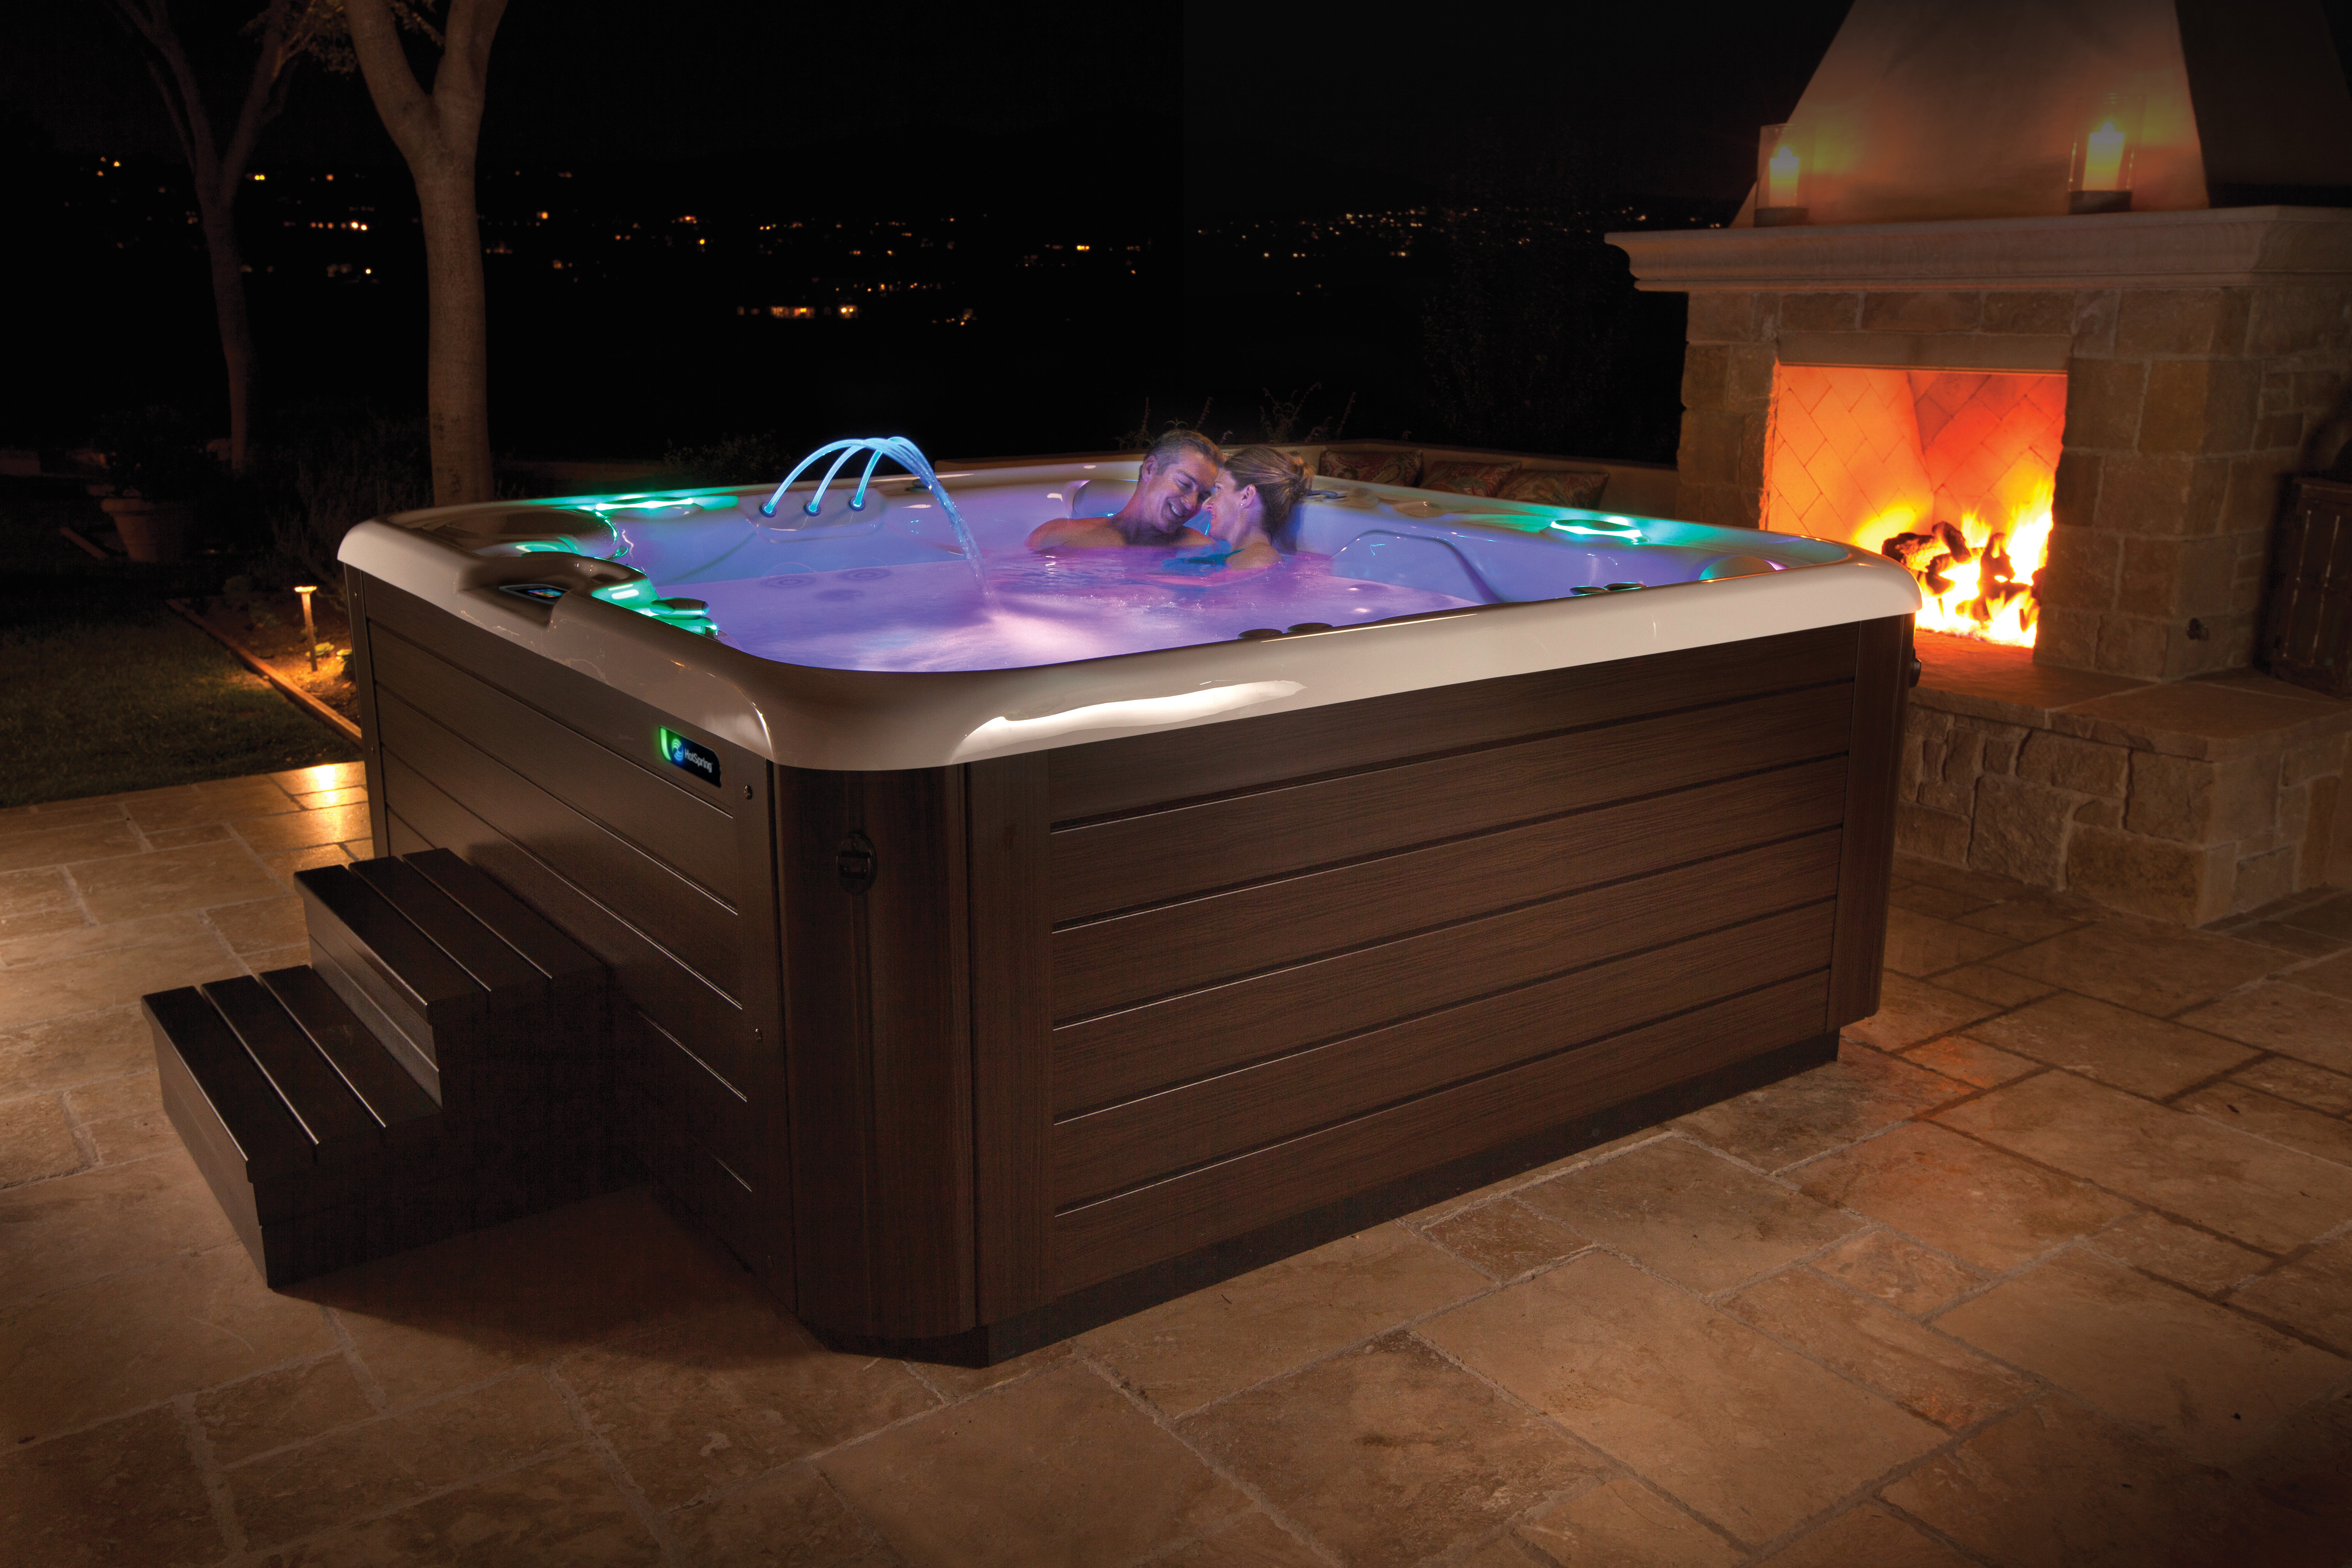 Rekindle The Romance – Plan A Hot Tub Date Night At Home